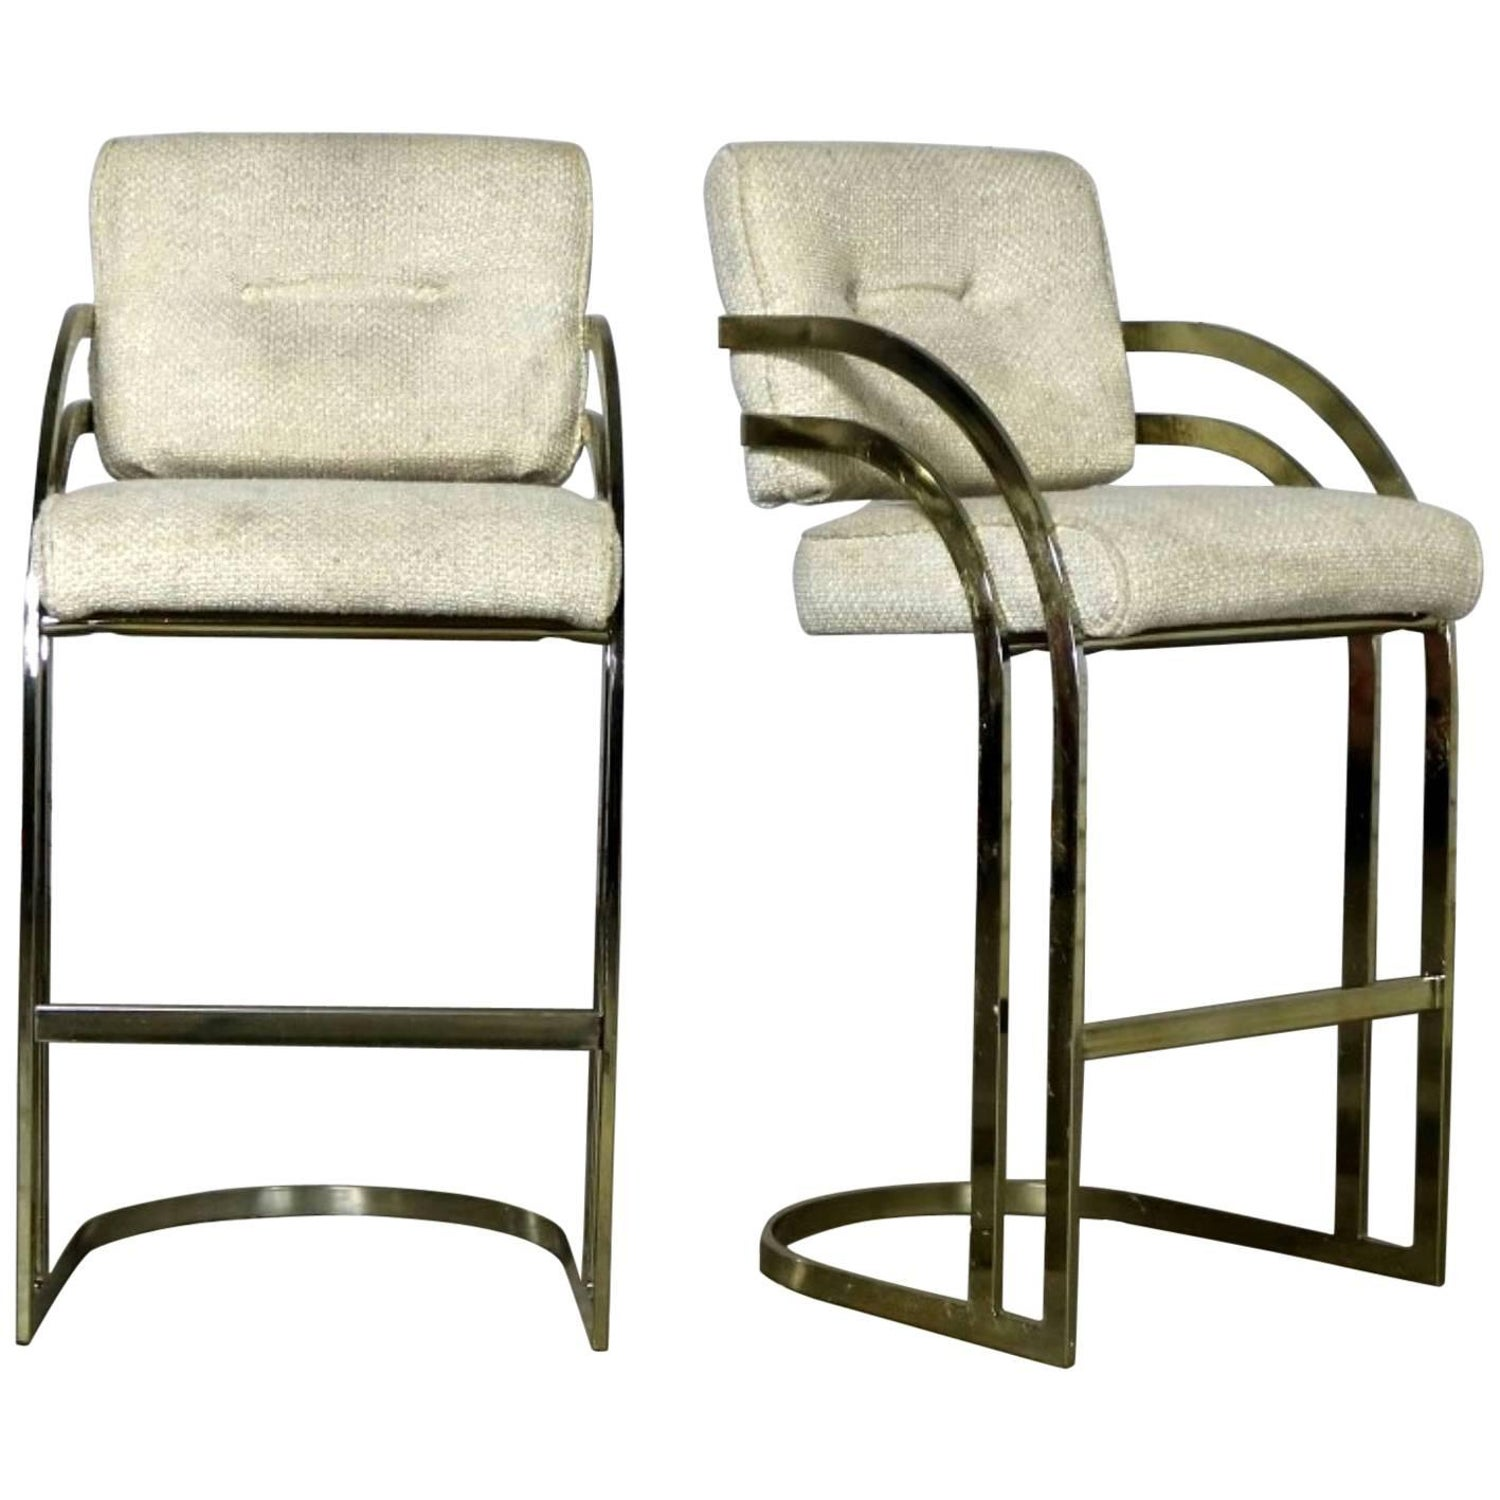 Fine Pair Of Milo Baughman Style Cantilever Brass Plated Bar Gmtry Best Dining Table And Chair Ideas Images Gmtryco